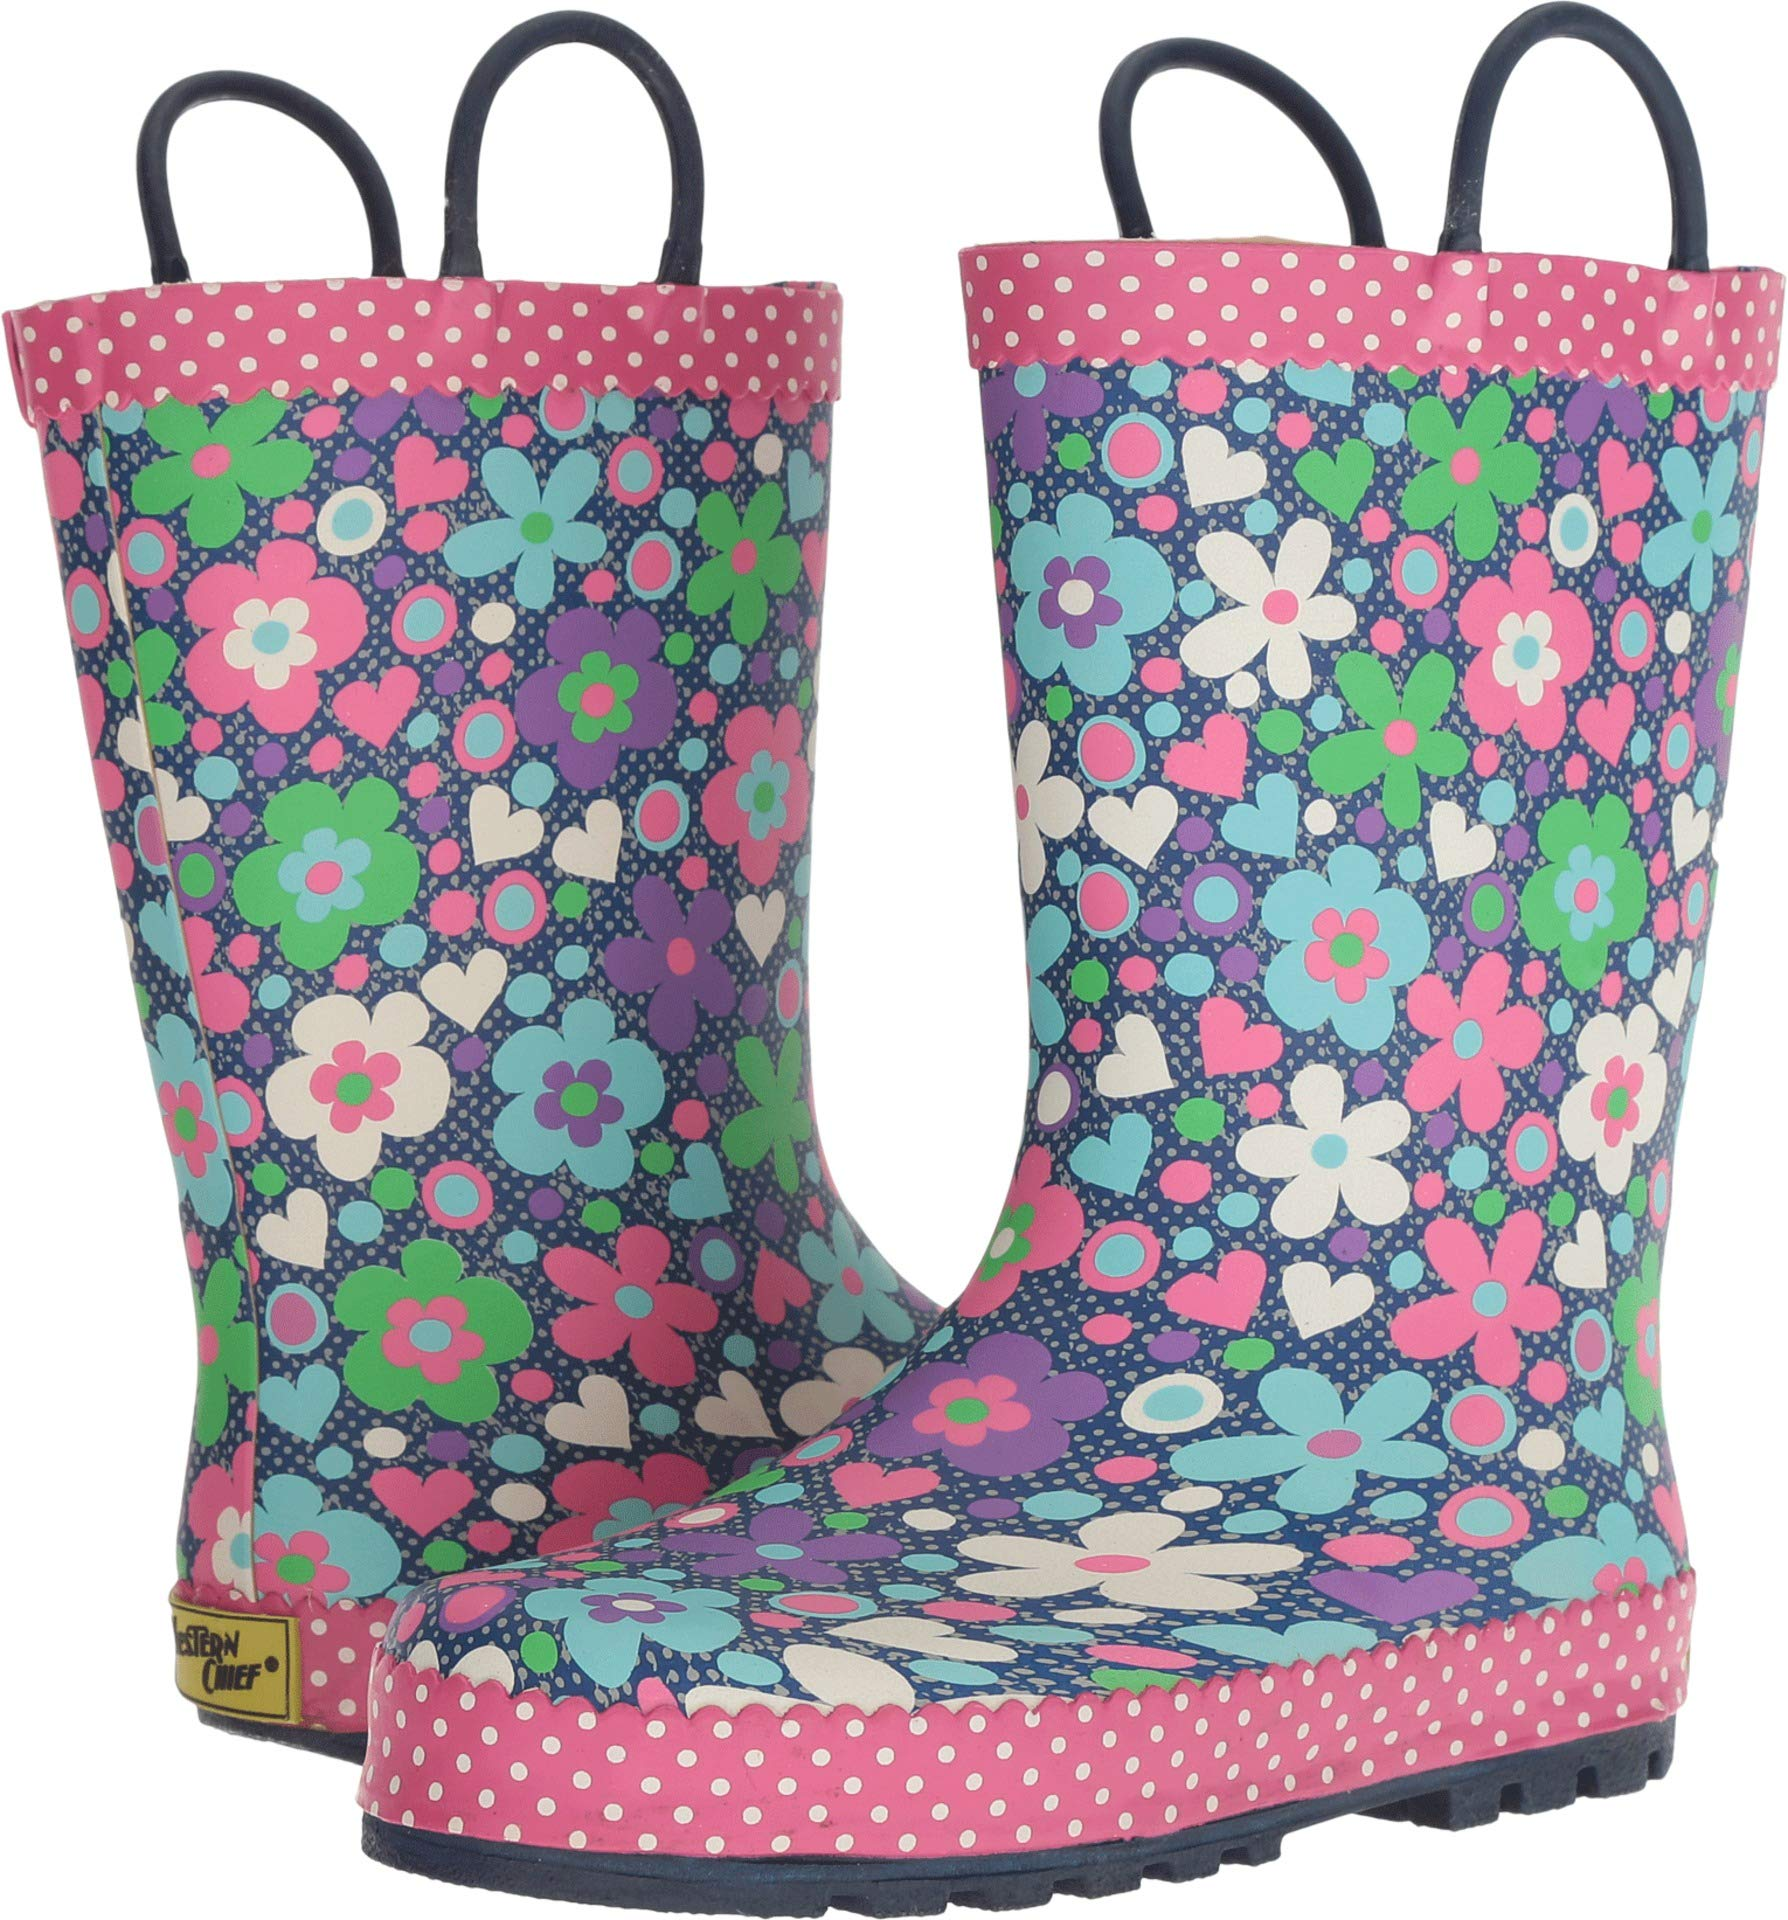 Western Chief Kids Baby Girl's Limited Edition Printed Rain Boots (Toddler/Little Kid) Precious Petals Denim 12 M US Little Kid M